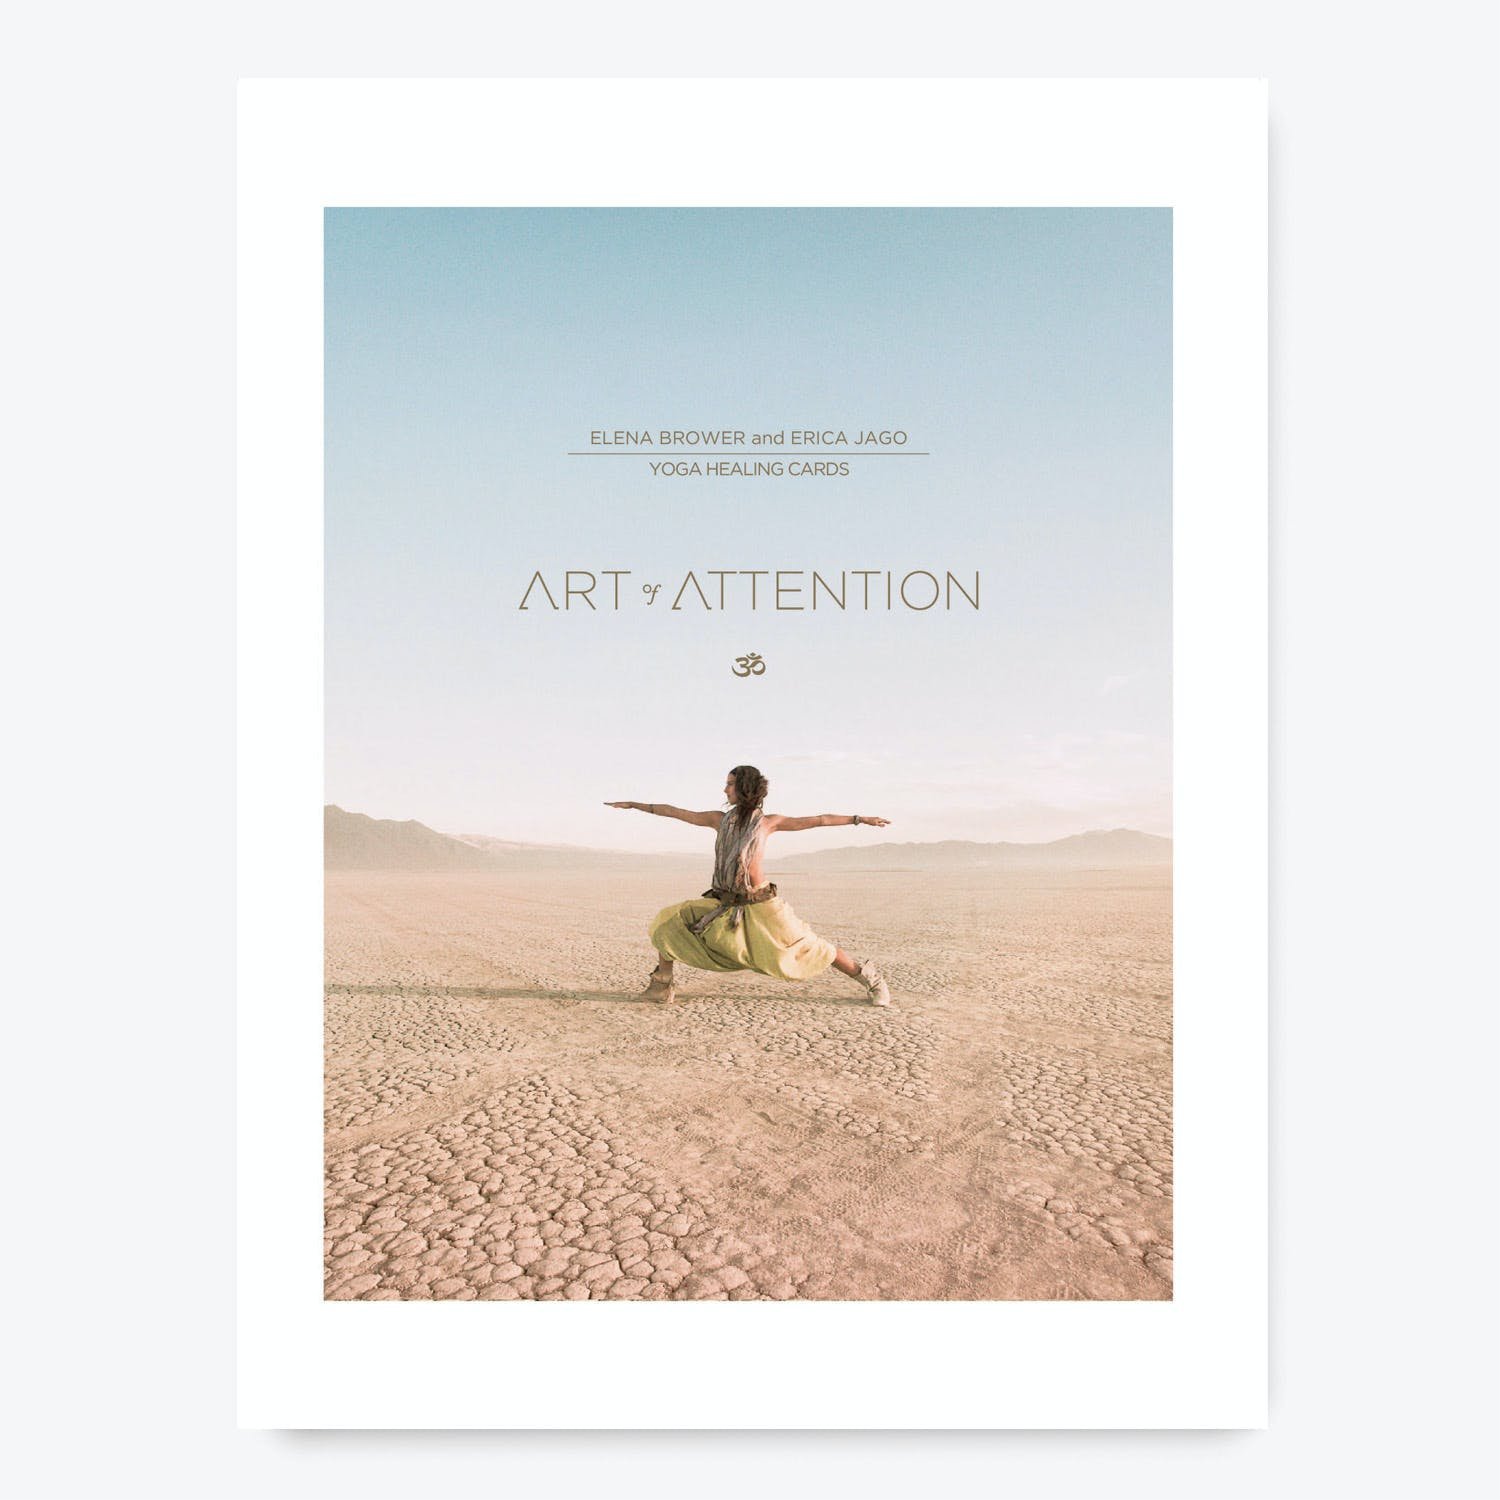 Product Image - Art of Attention: Yoga Healing Cards By Elena Brower and Erica Jago